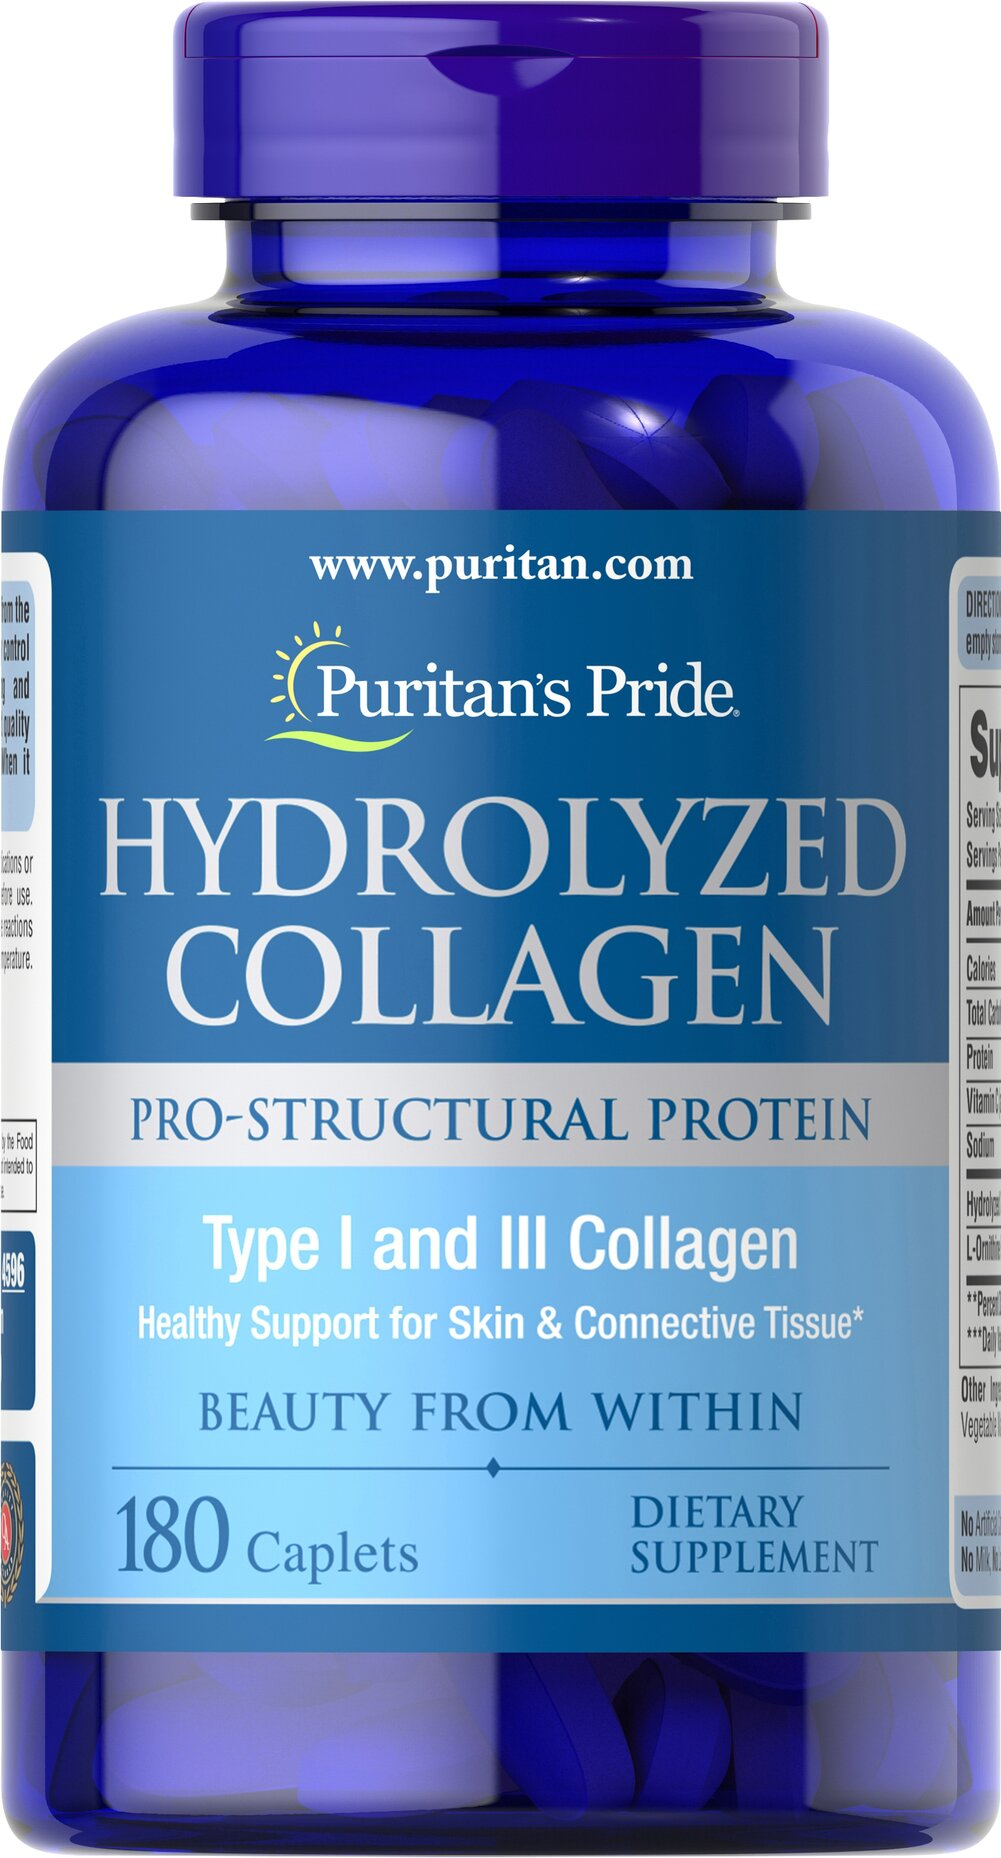 Hydrolyzed Collagen 1000 mg <p>Restore Strength and Flexibility to Hair, Skin and Nails</p><p>This 100% pure collagen protein supplement provides the major building materials for growth and maintenance of nails, hair and skin. Collagen is also an essential component of muscles, tendons, cartilage and teeth.**</p> 180 Caplets 1000 mg $19.79